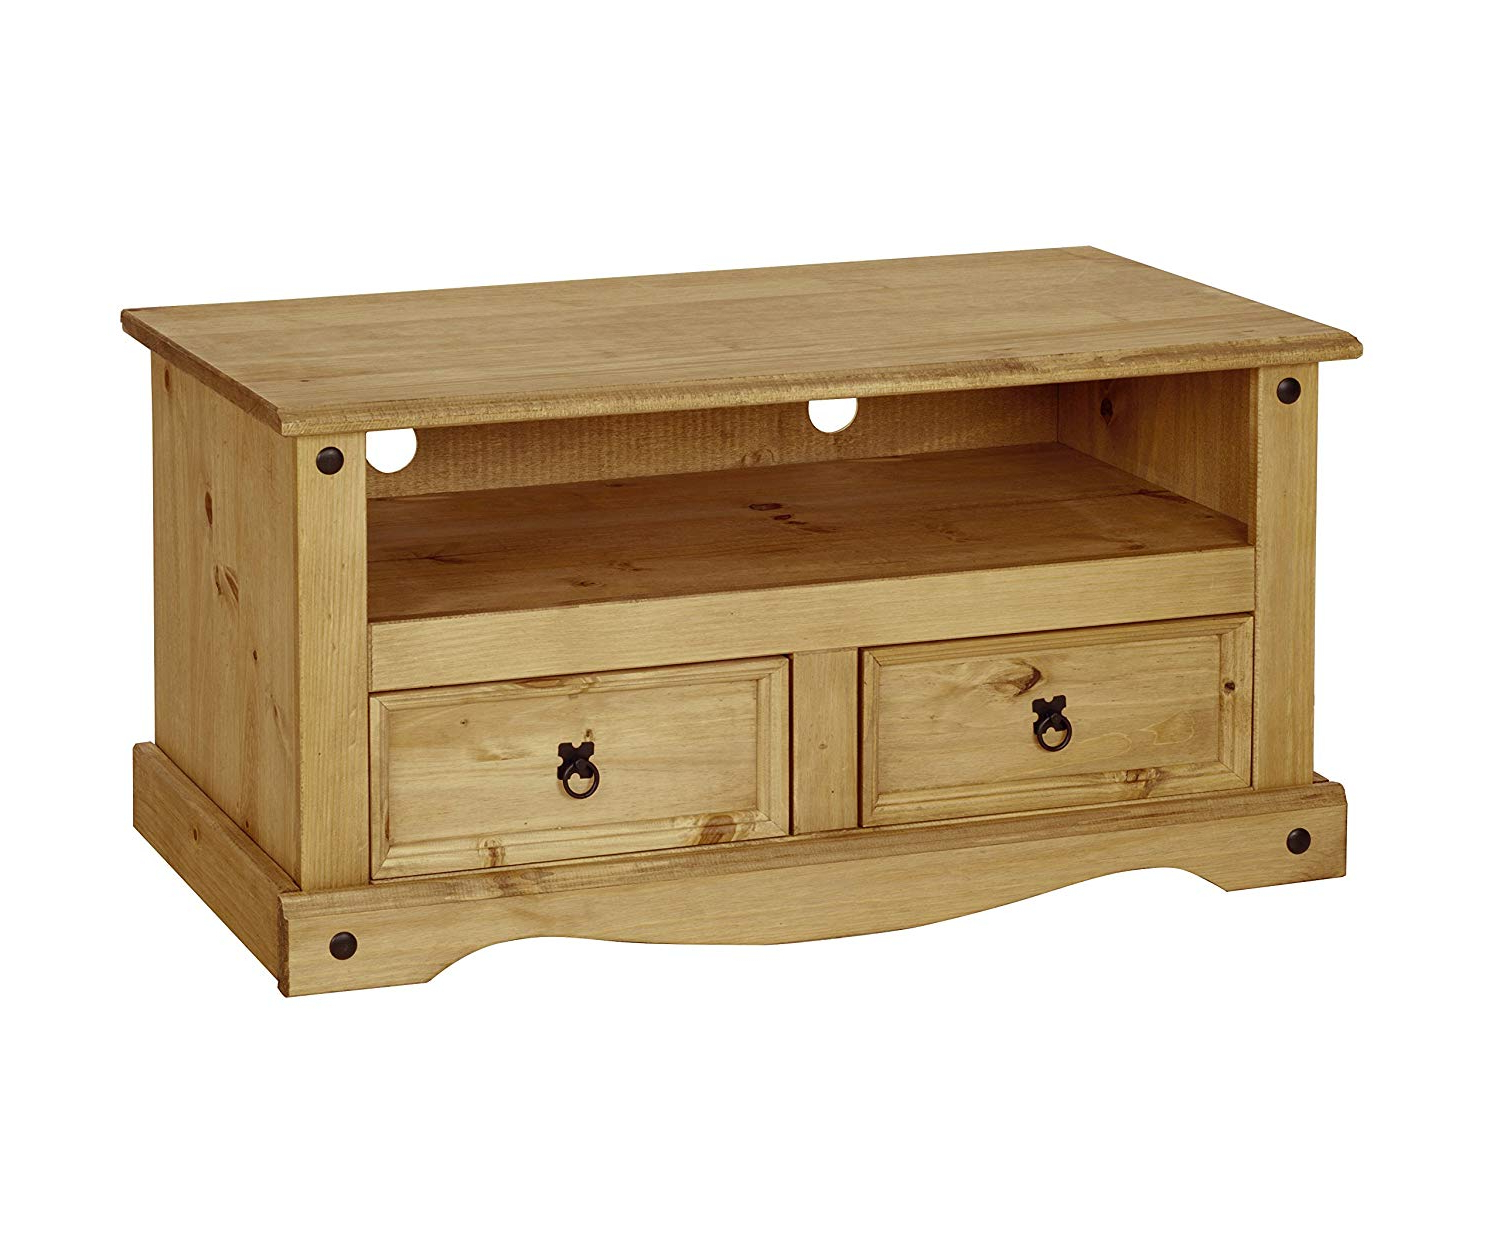 Corona Tv Stands Throughout Most Recently Released H4home Rustic Wooden Tv Stand Unit With 2 Drawers Solid (View 1 of 10)